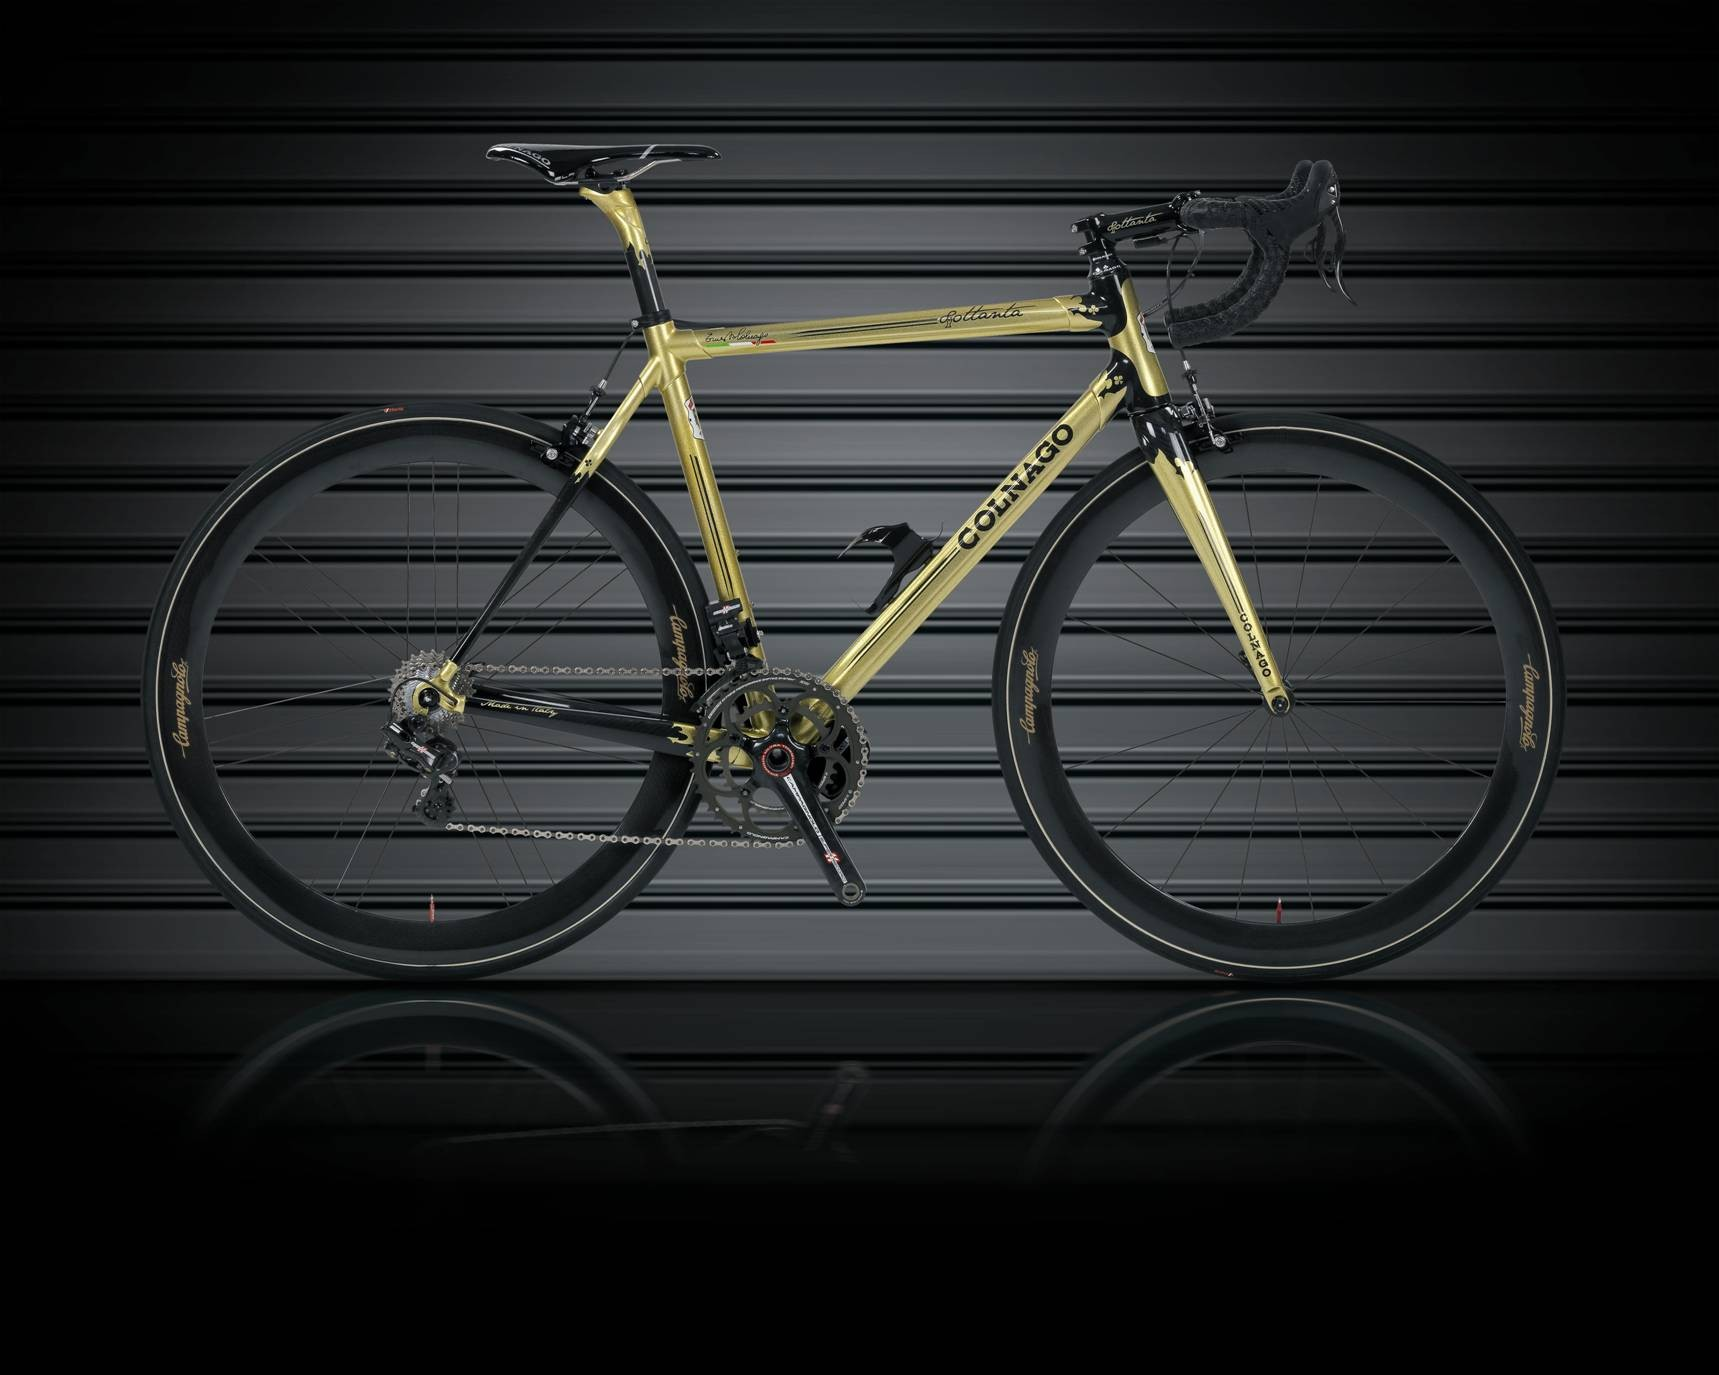 The Colnago C59 Ottanta - only 80 are being made